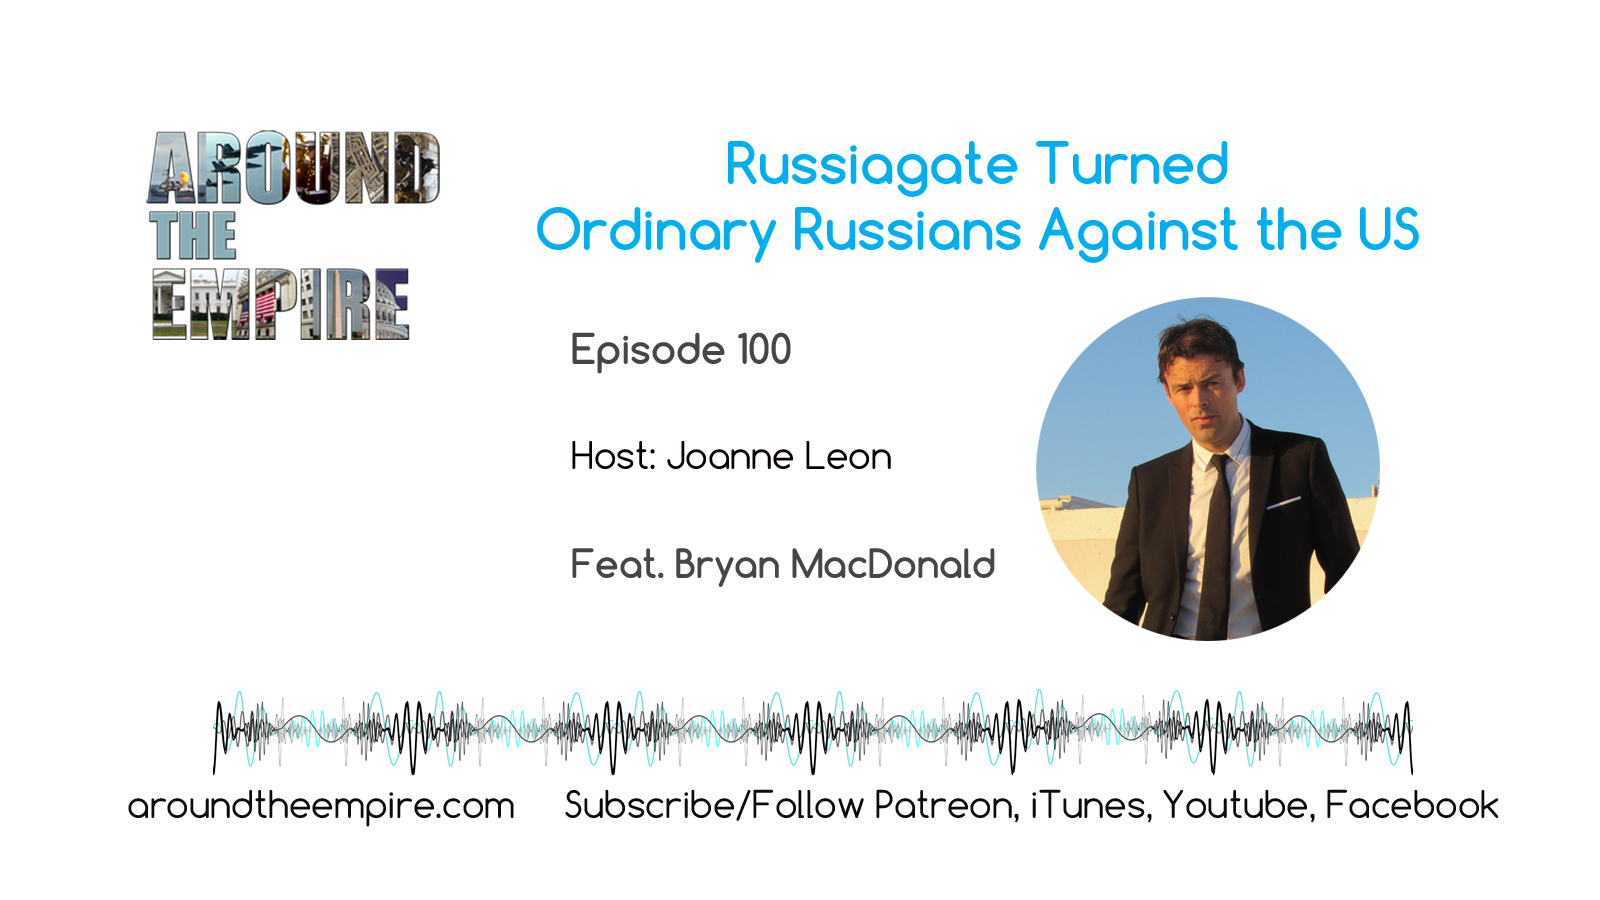 Ep 100 Russagate Turned Ordinary Russians Against US feat Bryan MacDonald